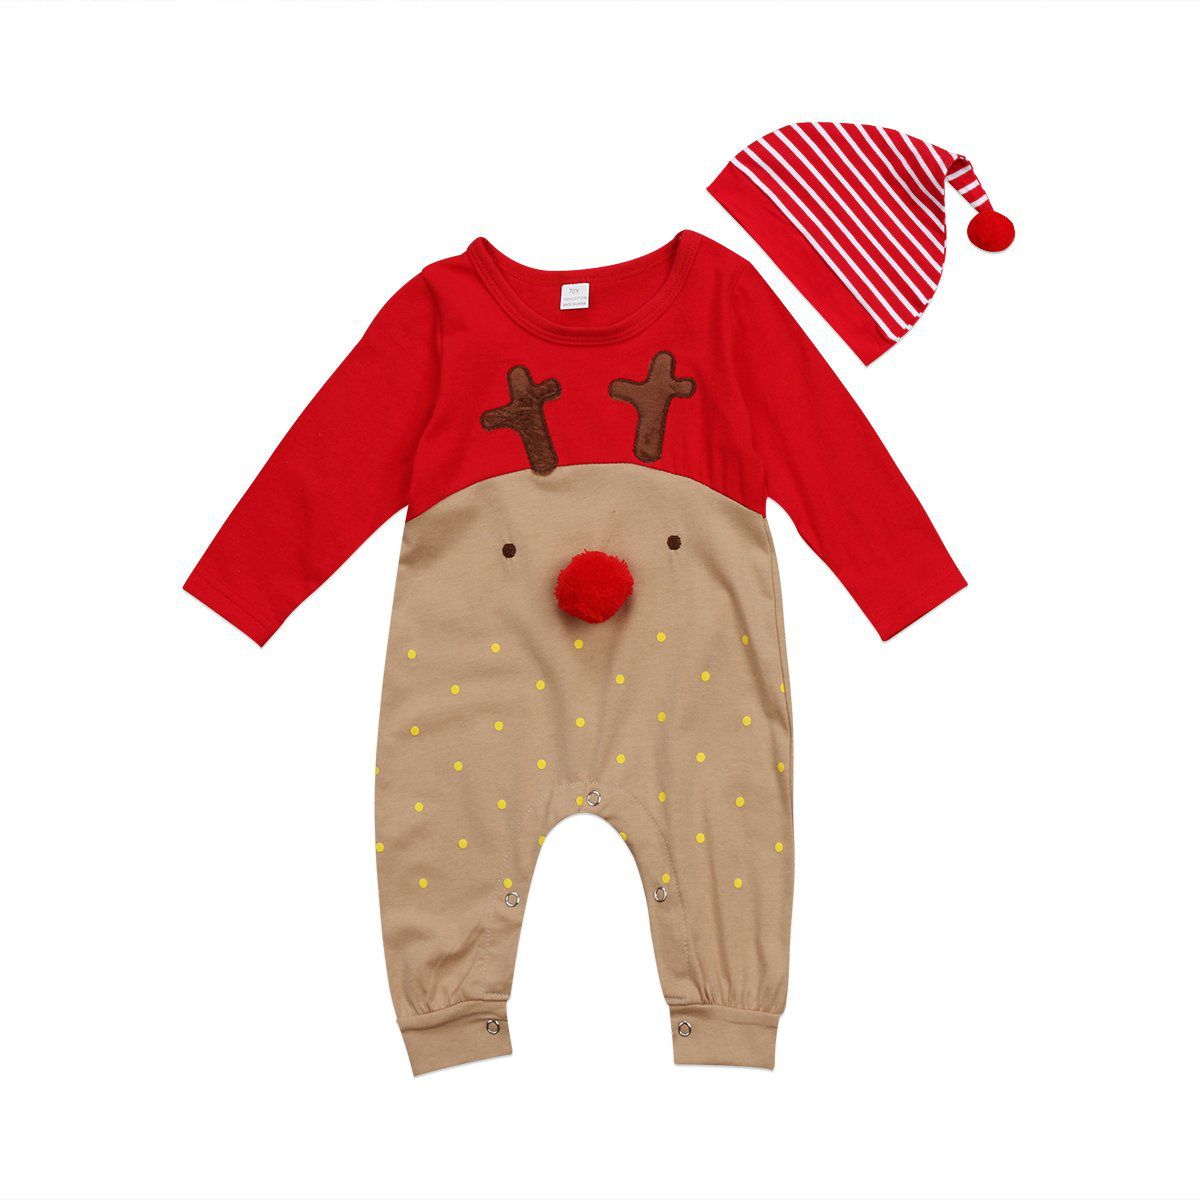 d3863d647 Red Patchwork Baby Xmas Rompers Long Sleeve Cotton Christmas ...